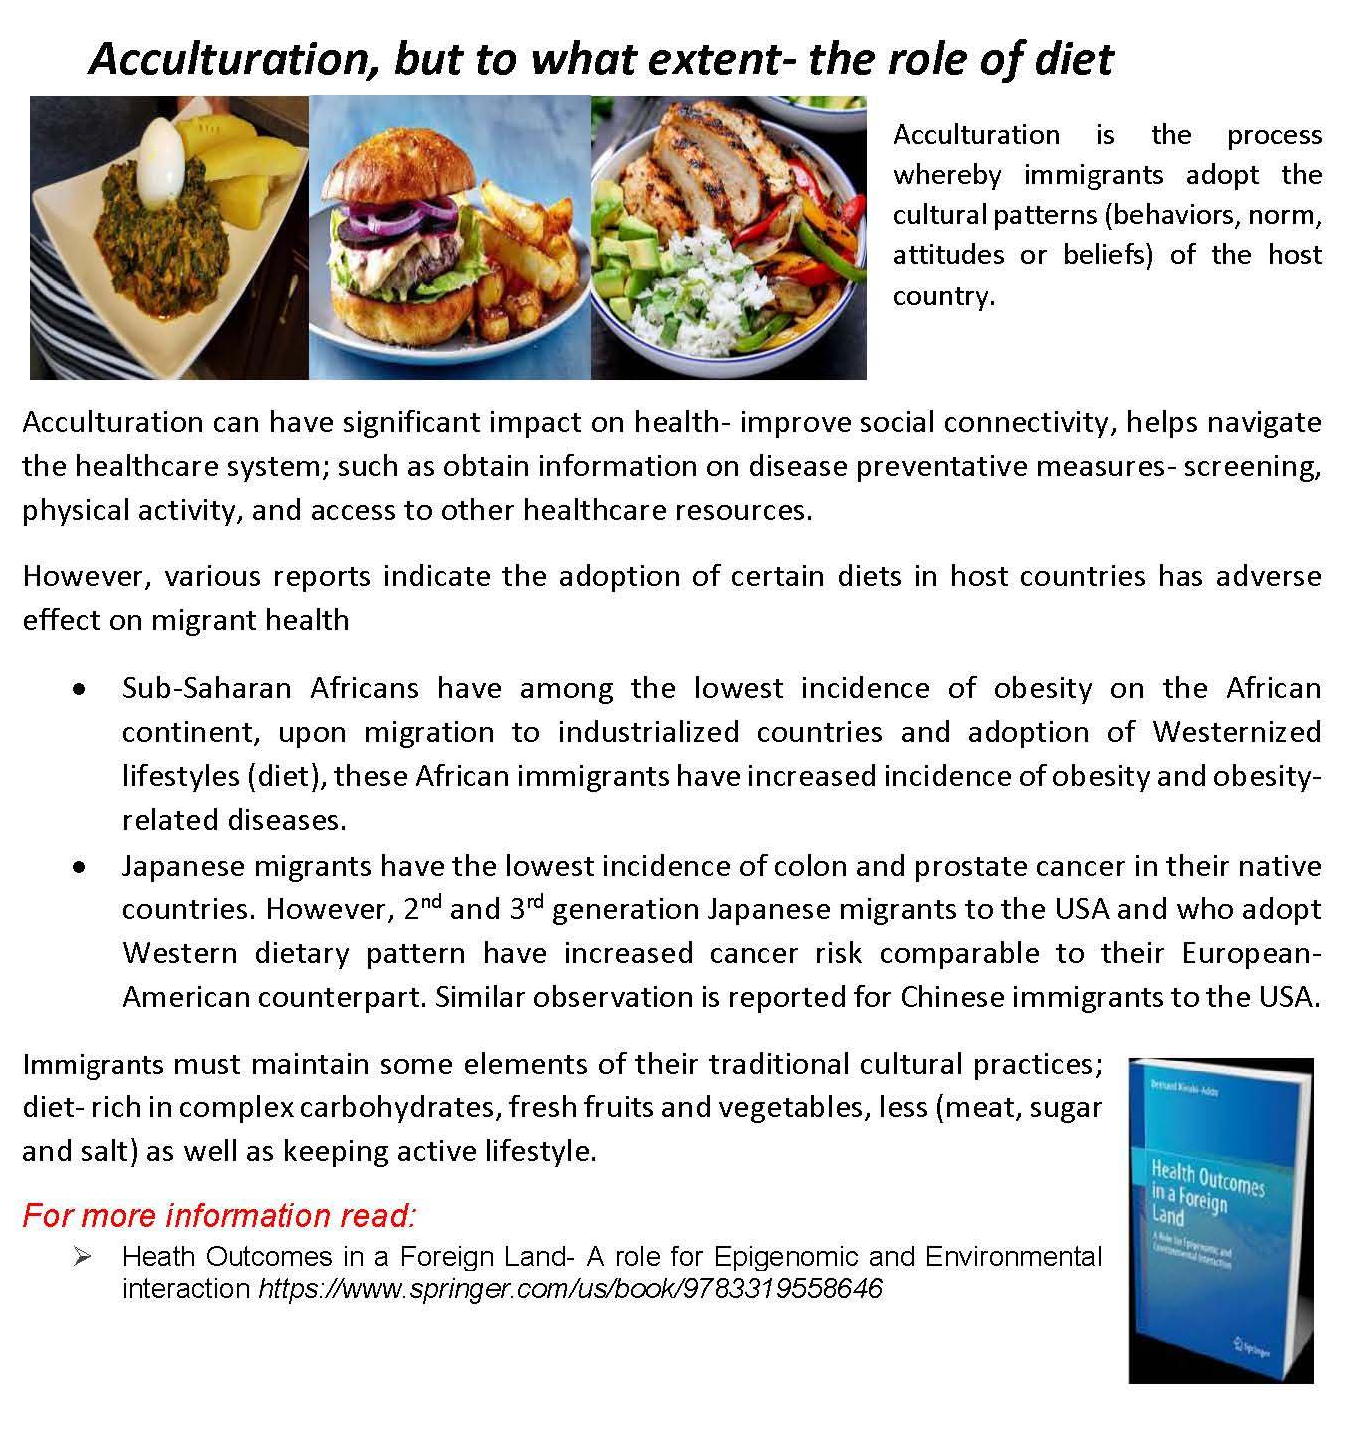 Acculturation and migrant diet